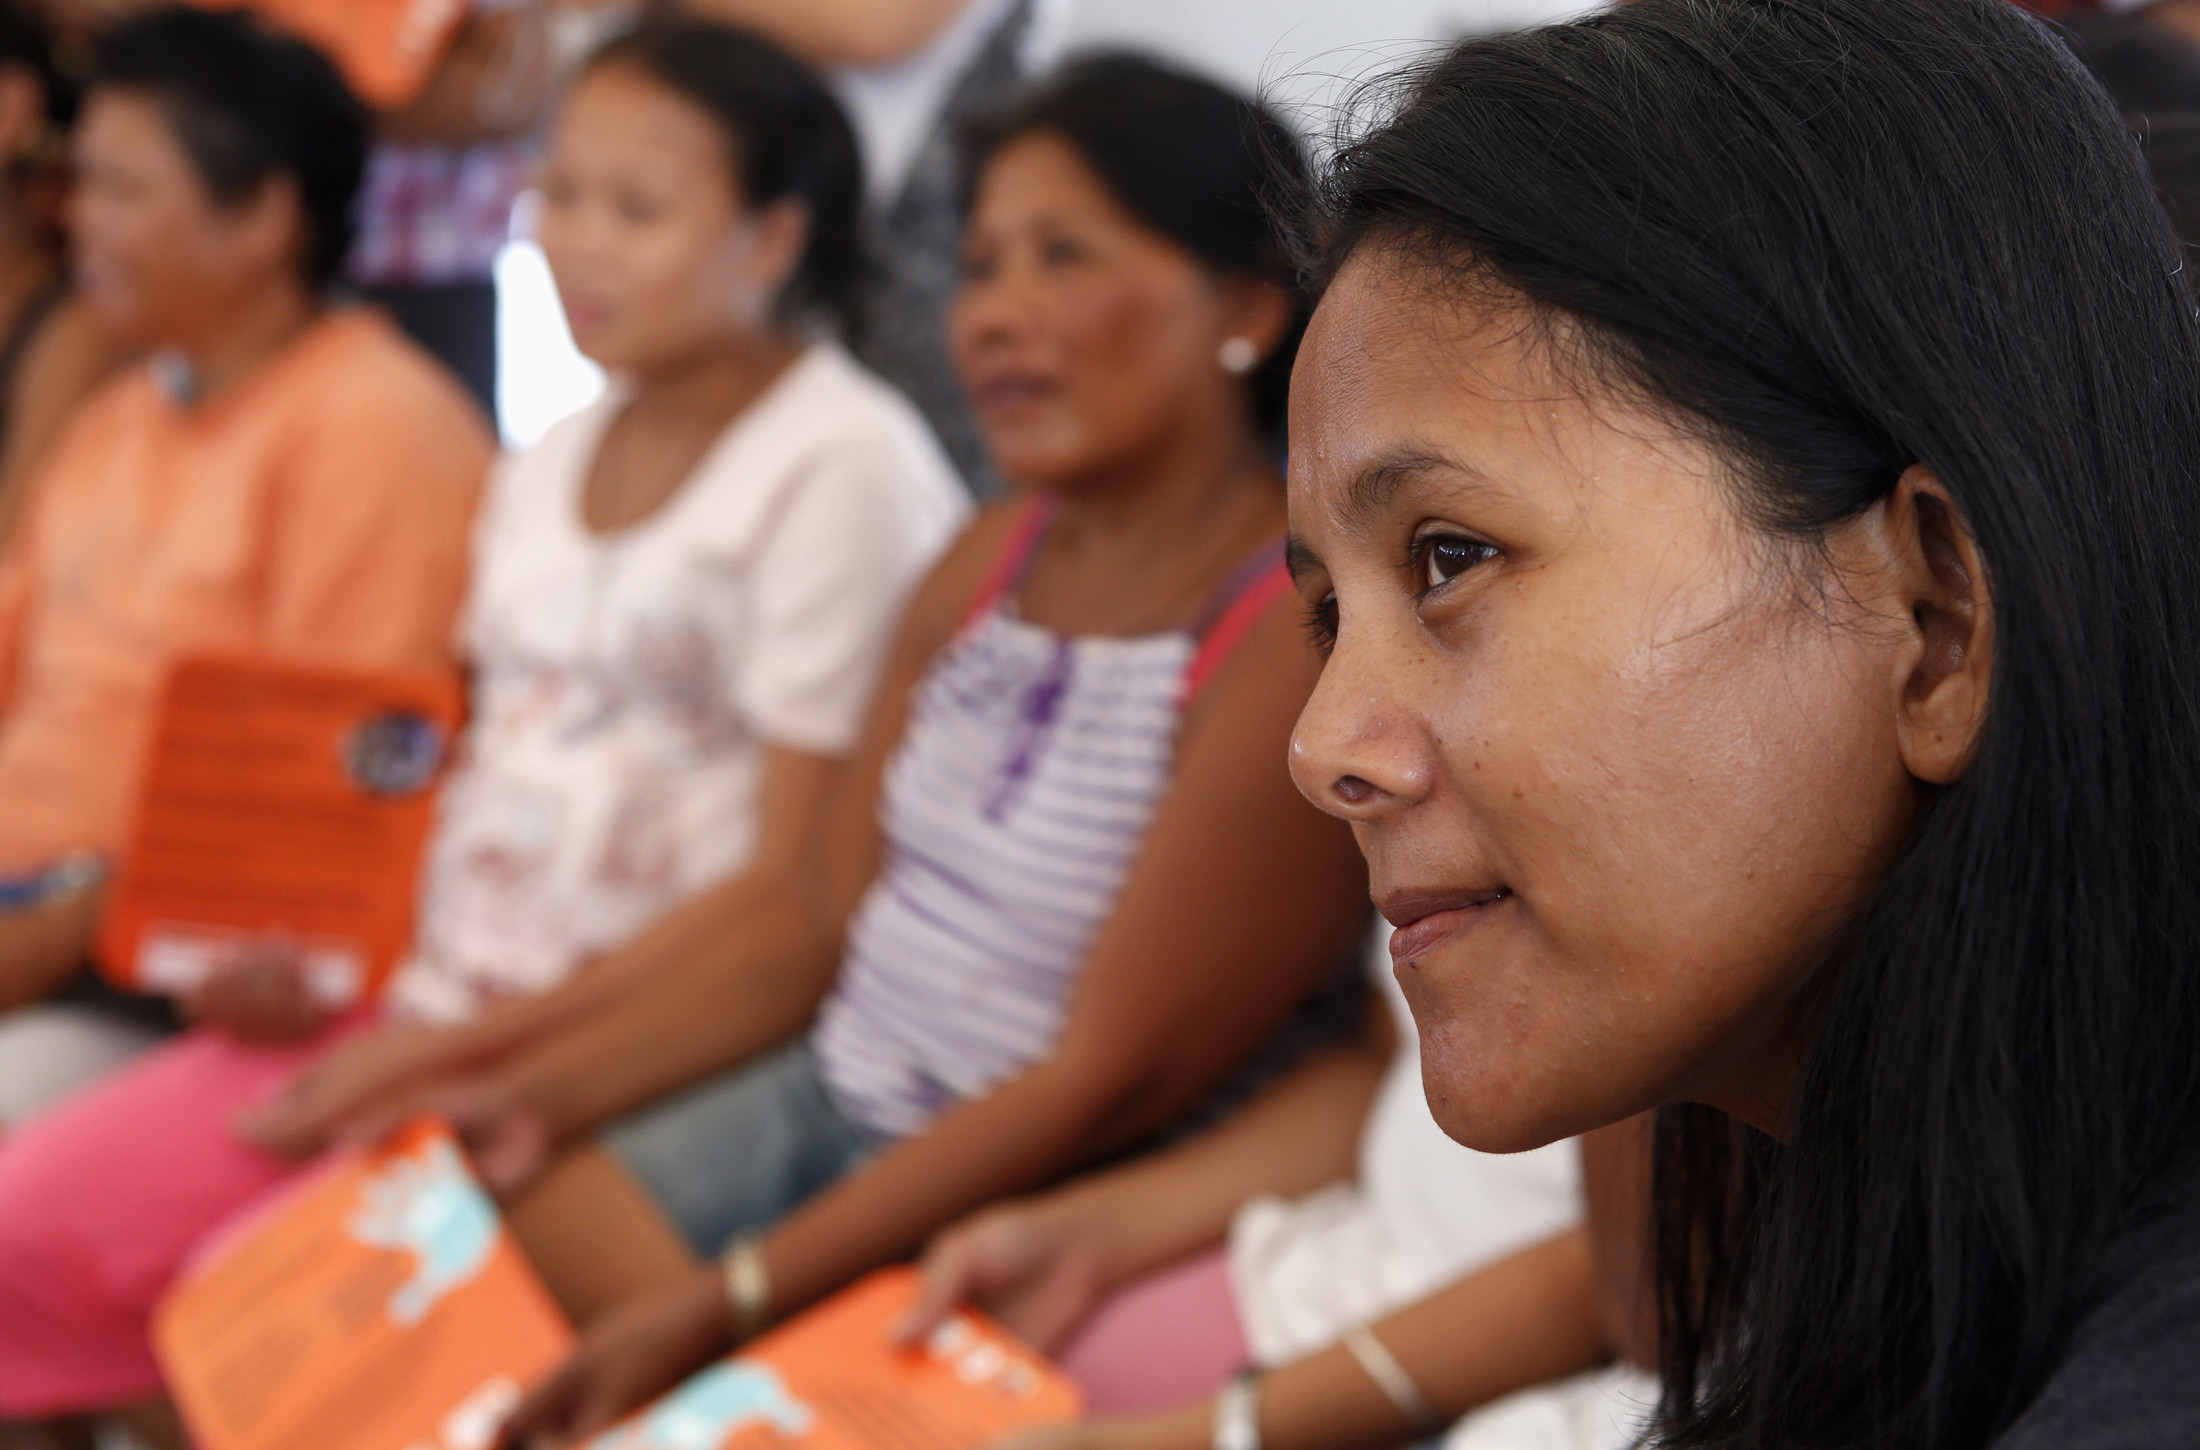 Women survivors of super typhoon Haiyan listen during a lecture on the prevention of gender-based violence by United Nations Population Fund (UNFPA) volunteer in Tacloban city in central Philippines December 14, 2013. Based on national data in the eight affected provinces prior to the disaster, an estimated 375,000 women and girls aged 15-49 would have experienced sexual violence in their lifetime. This number could increase by 75,000 without adequate protection measures, UNFPA said in a statement.   REUTERS/Erik De Castro (PHILIPPINES - Tags: DISASTER HEALTH) - GM1E9CE1FG601